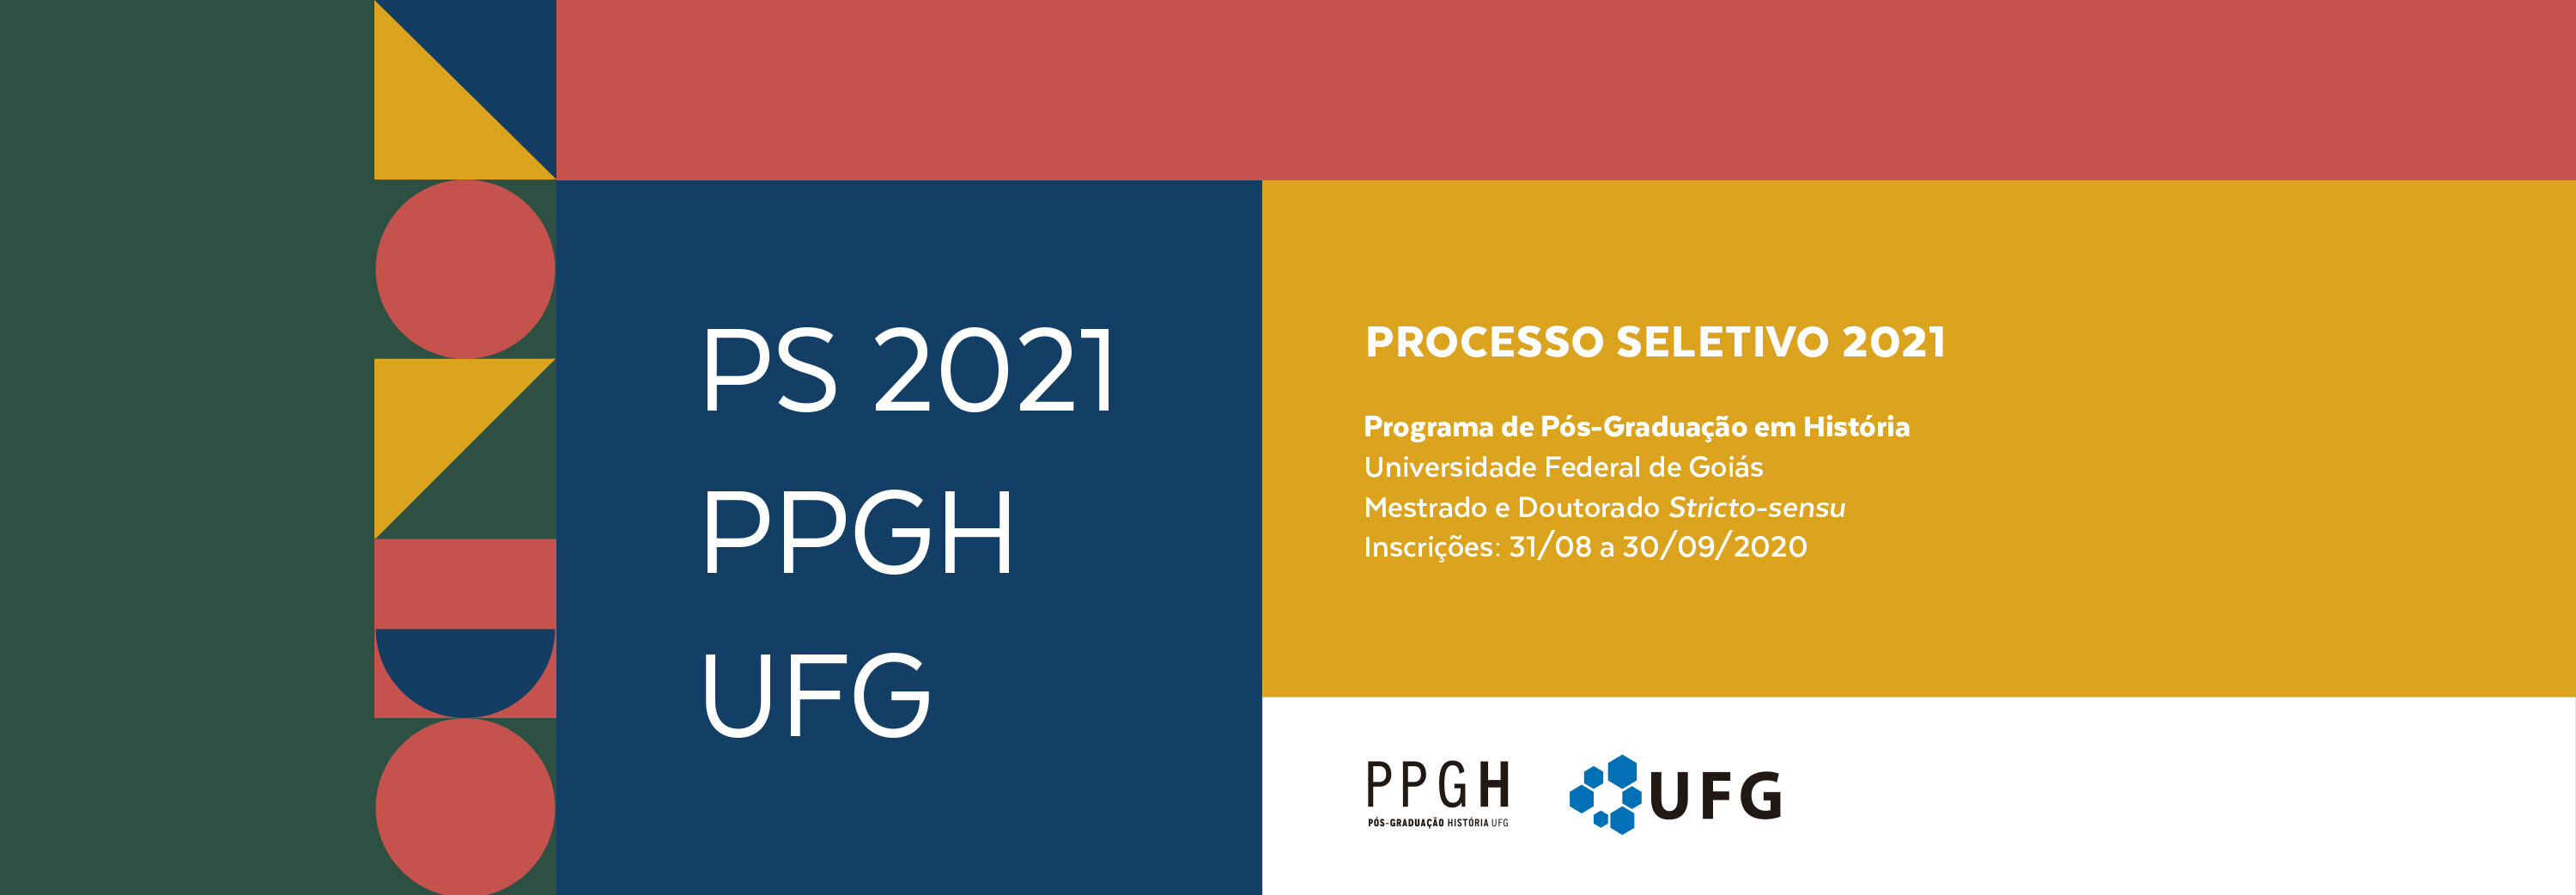 Banner Site PS PPGH UFG 2021